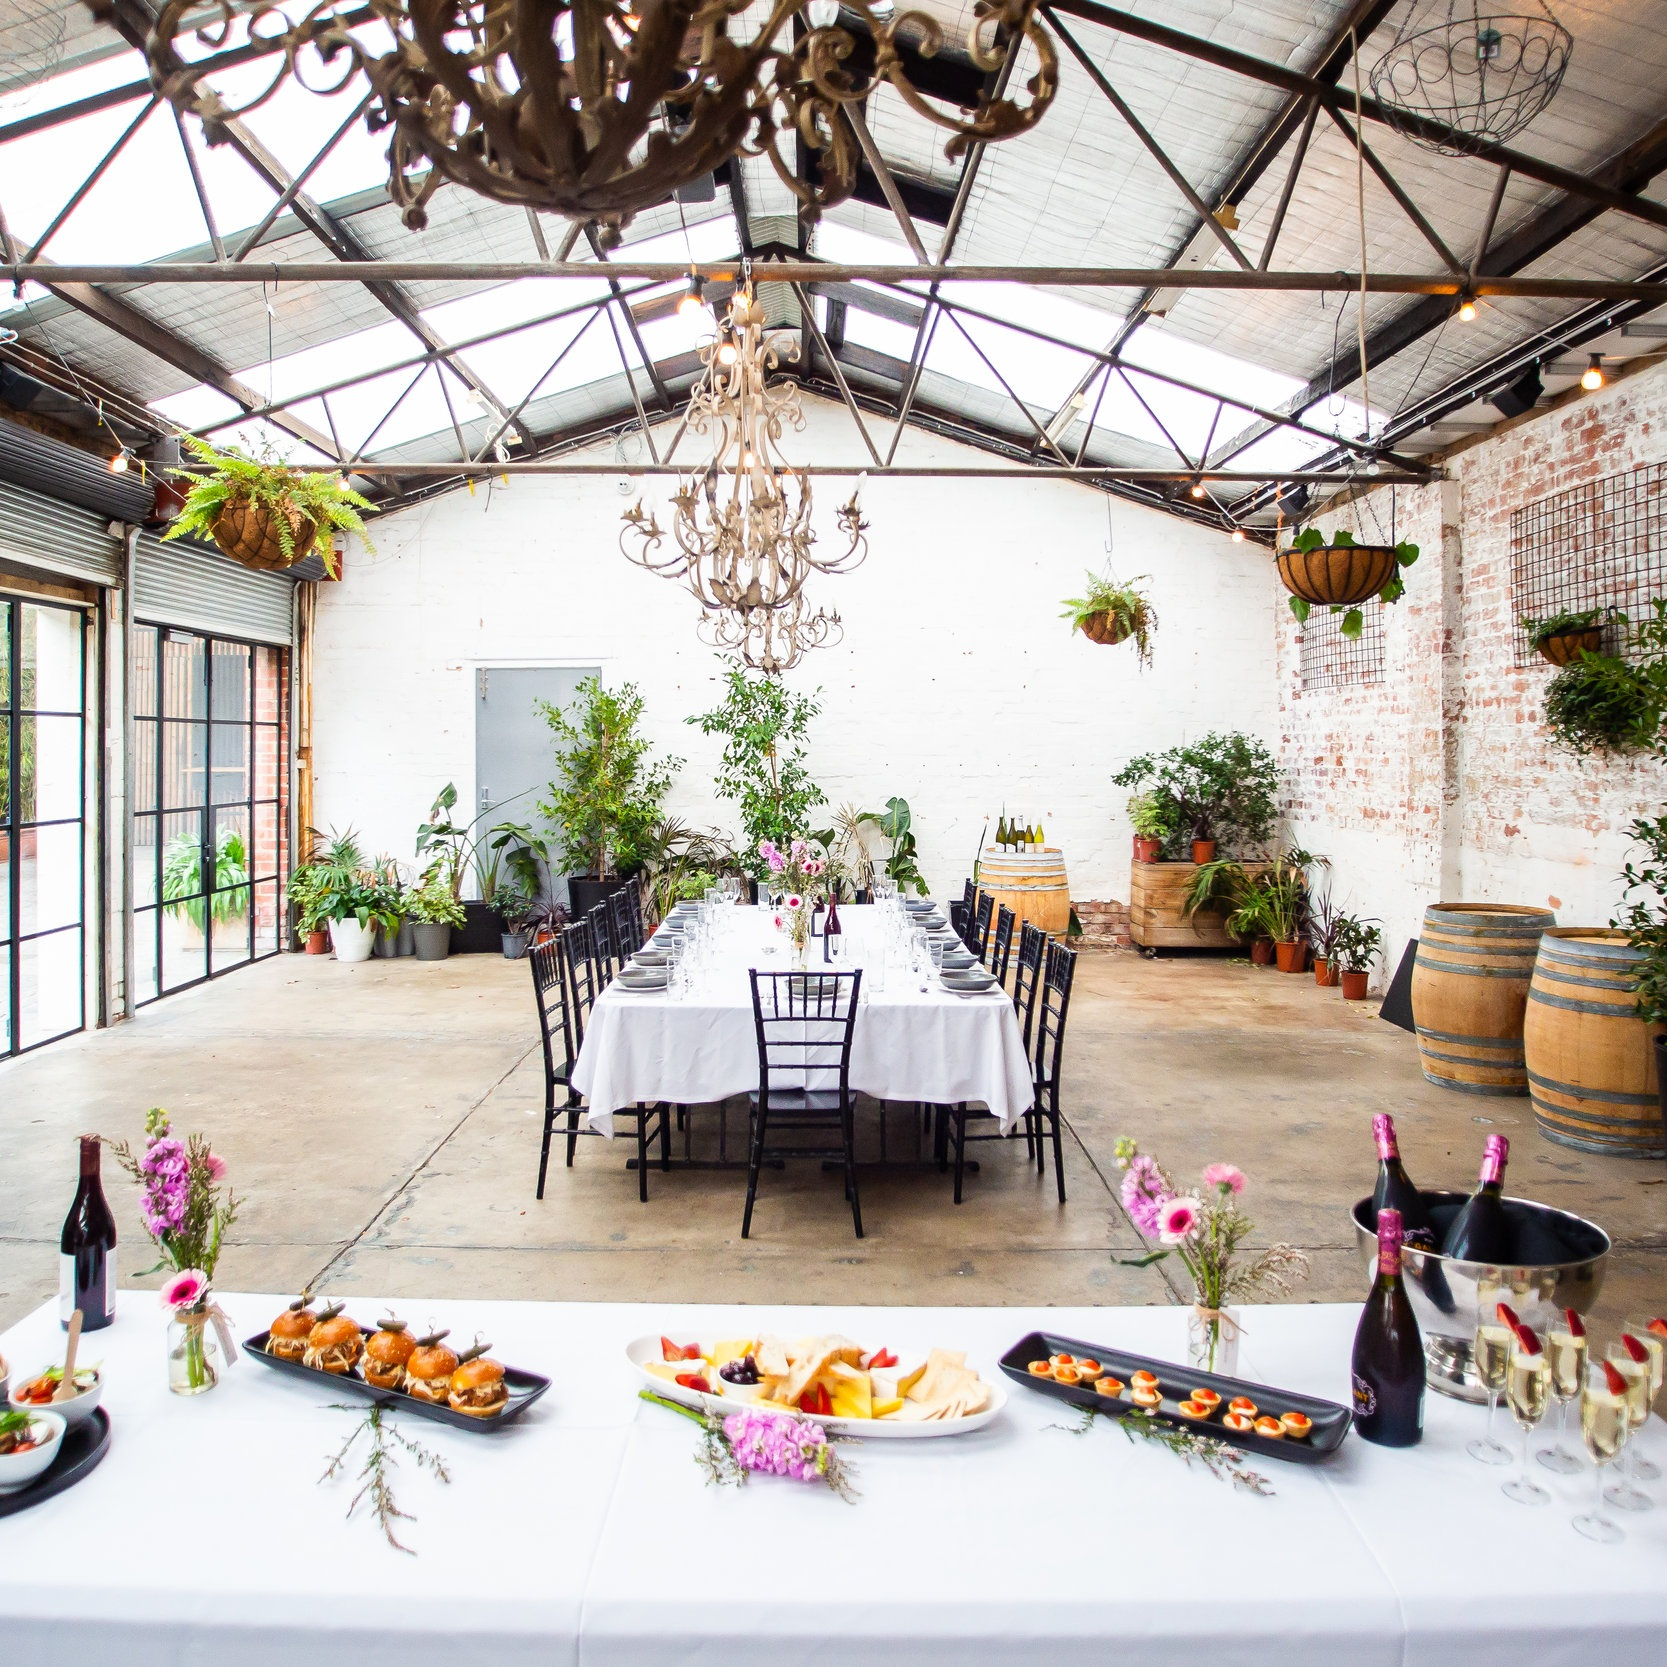 Venue Manager - We are looking for an experienced Venue Manager to lead our front of house team. An opportunity exists for a hands on candidate with experience in the hospitality industry.- Please email your CV to careers@chgaustralia.com